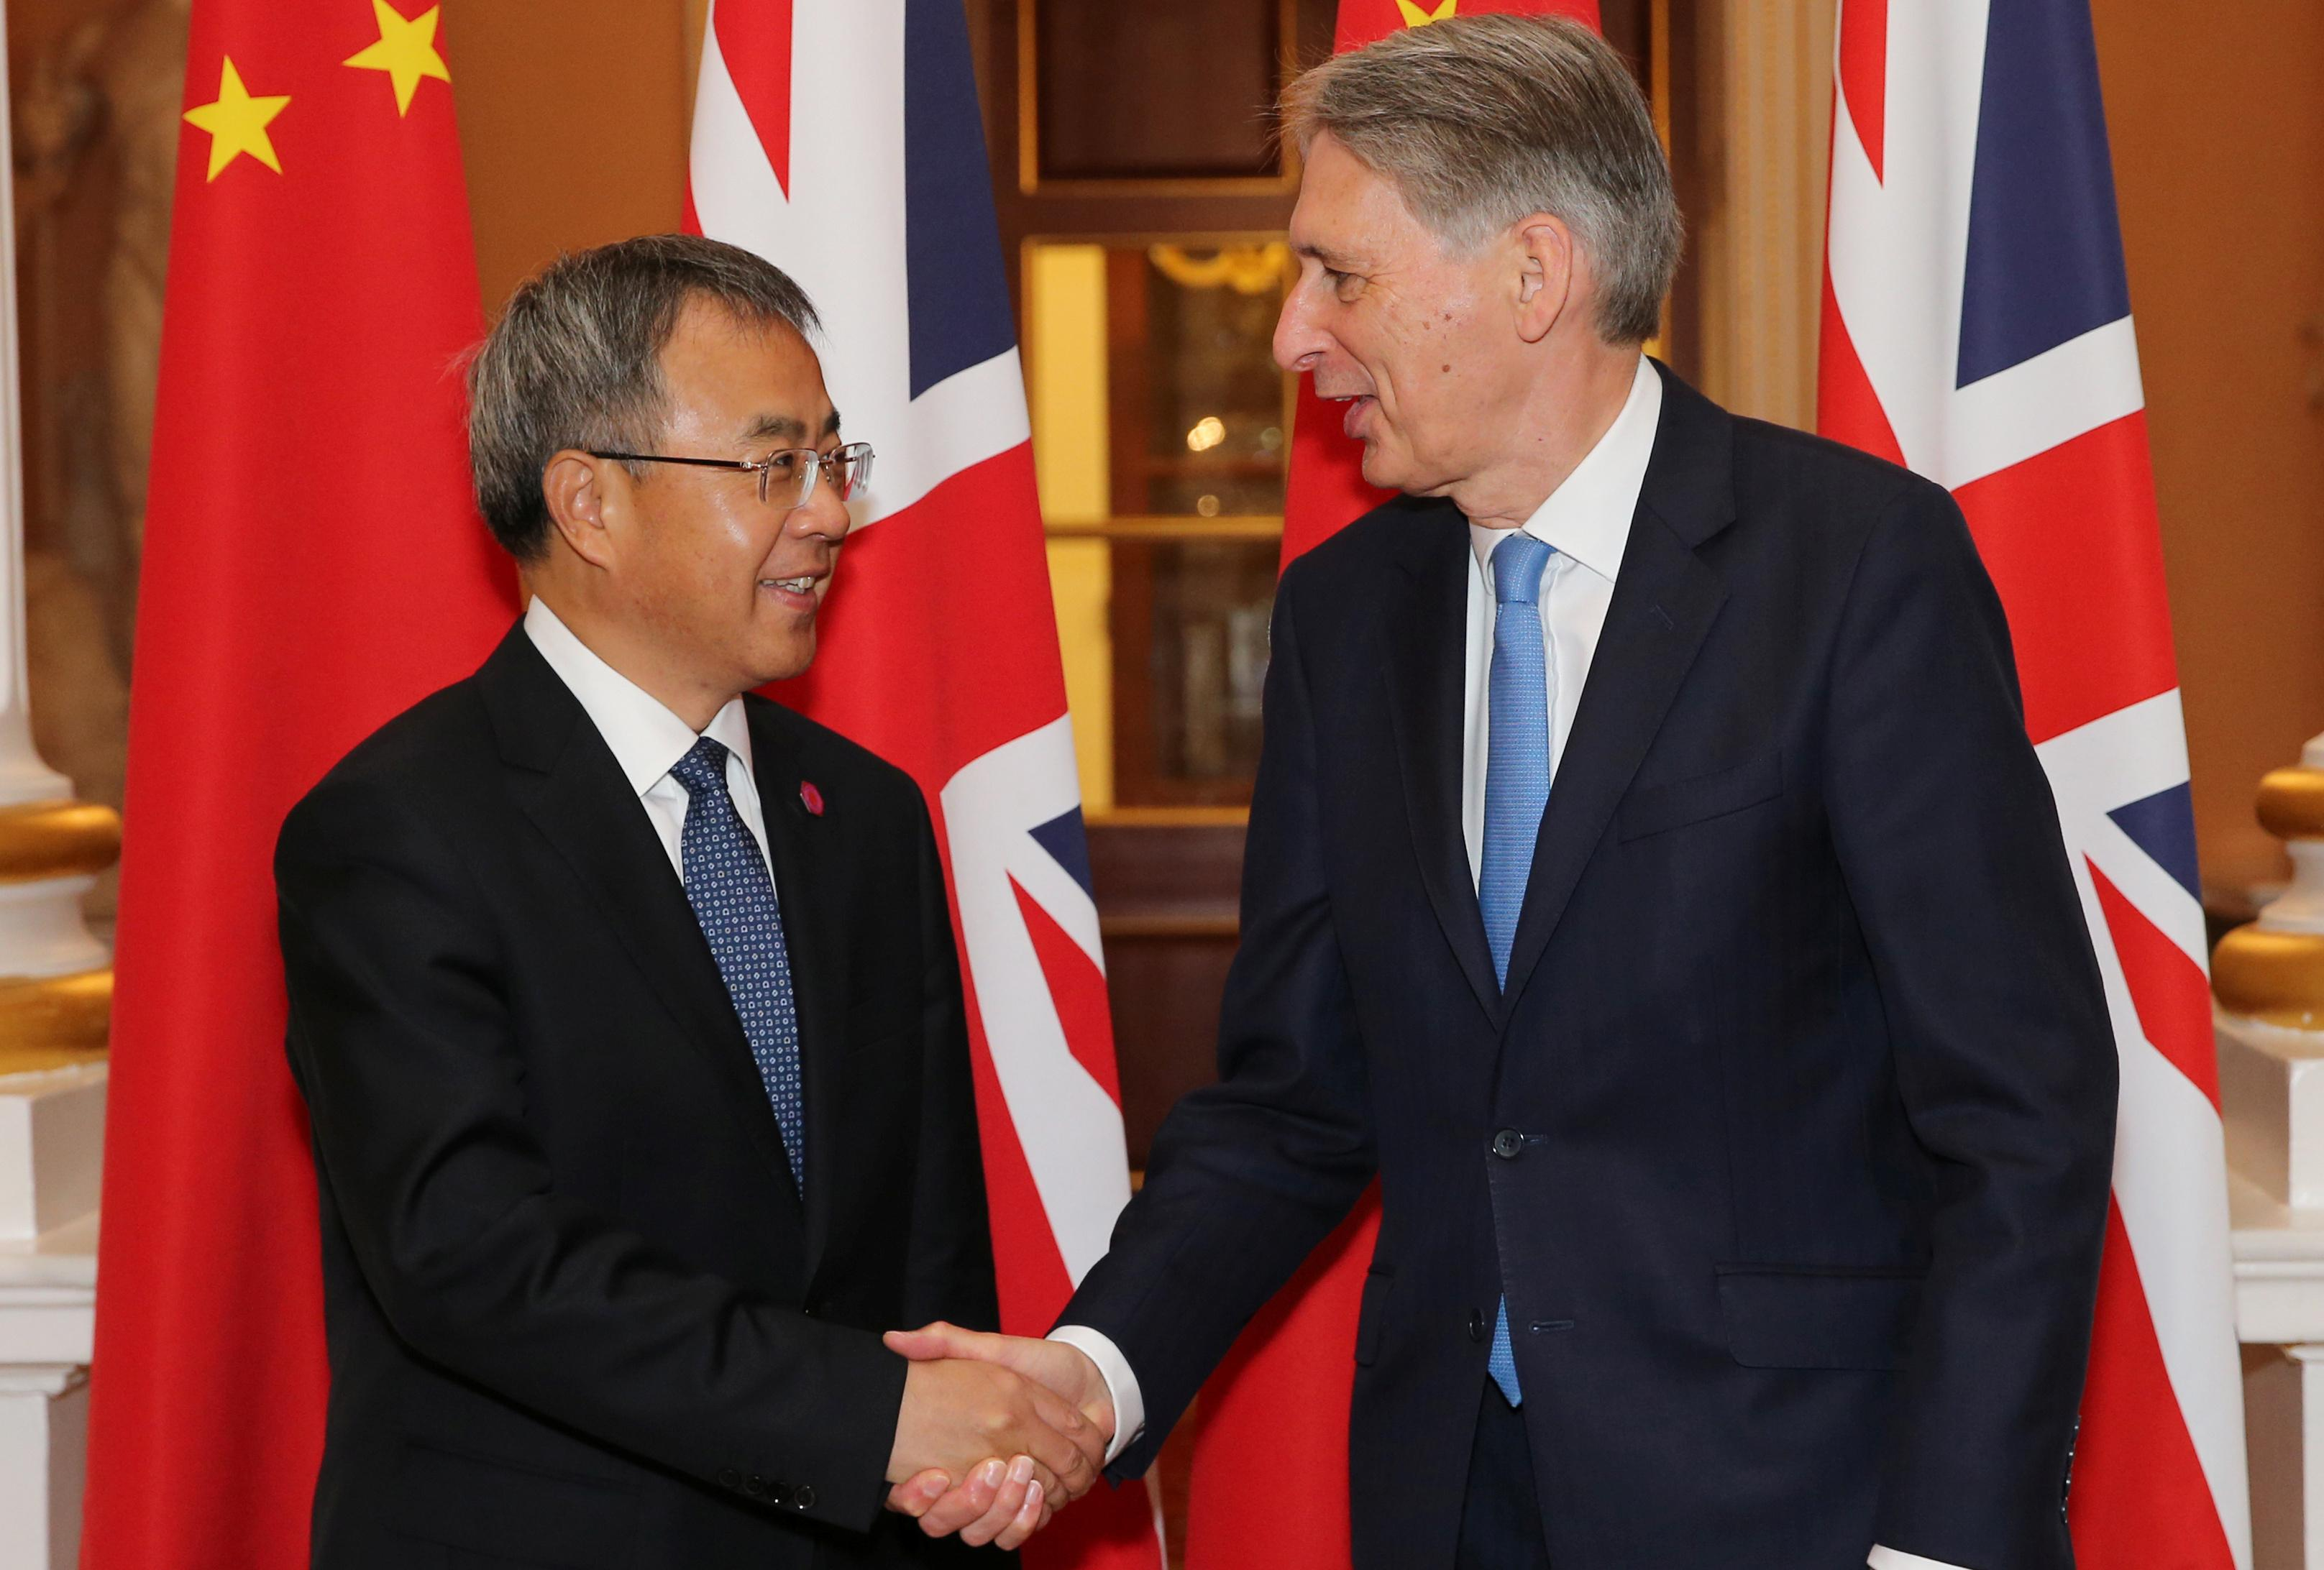 UK and China to speed up plans for bond trading connection: Hammond